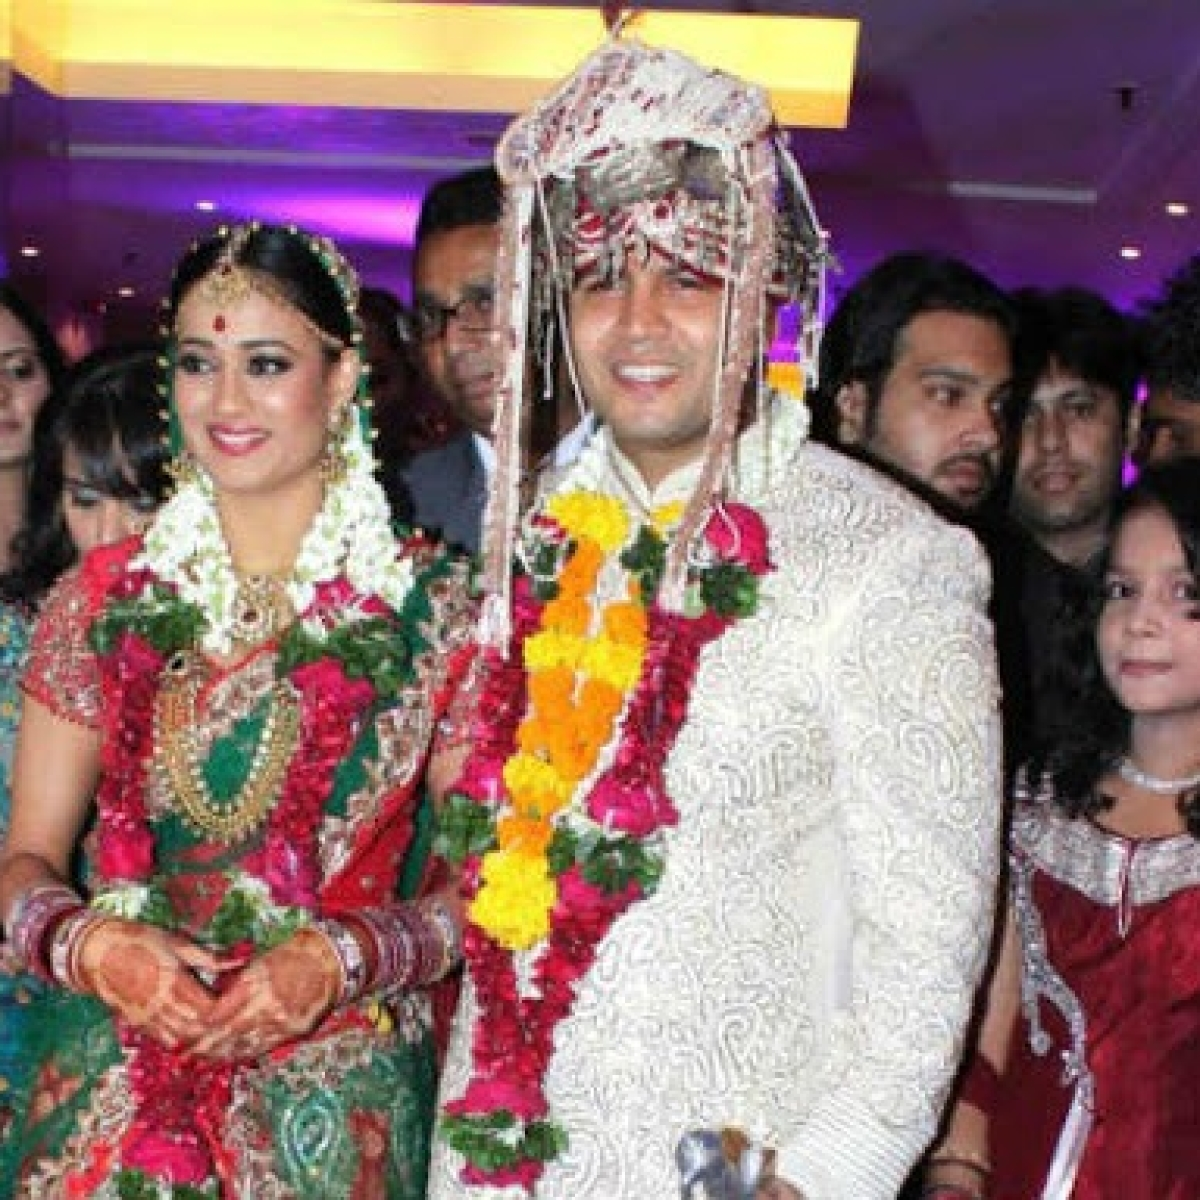 Shweta Tiwari's husband Abhinav Kohli claims no domestic violence case was filed against him, they're still in touch